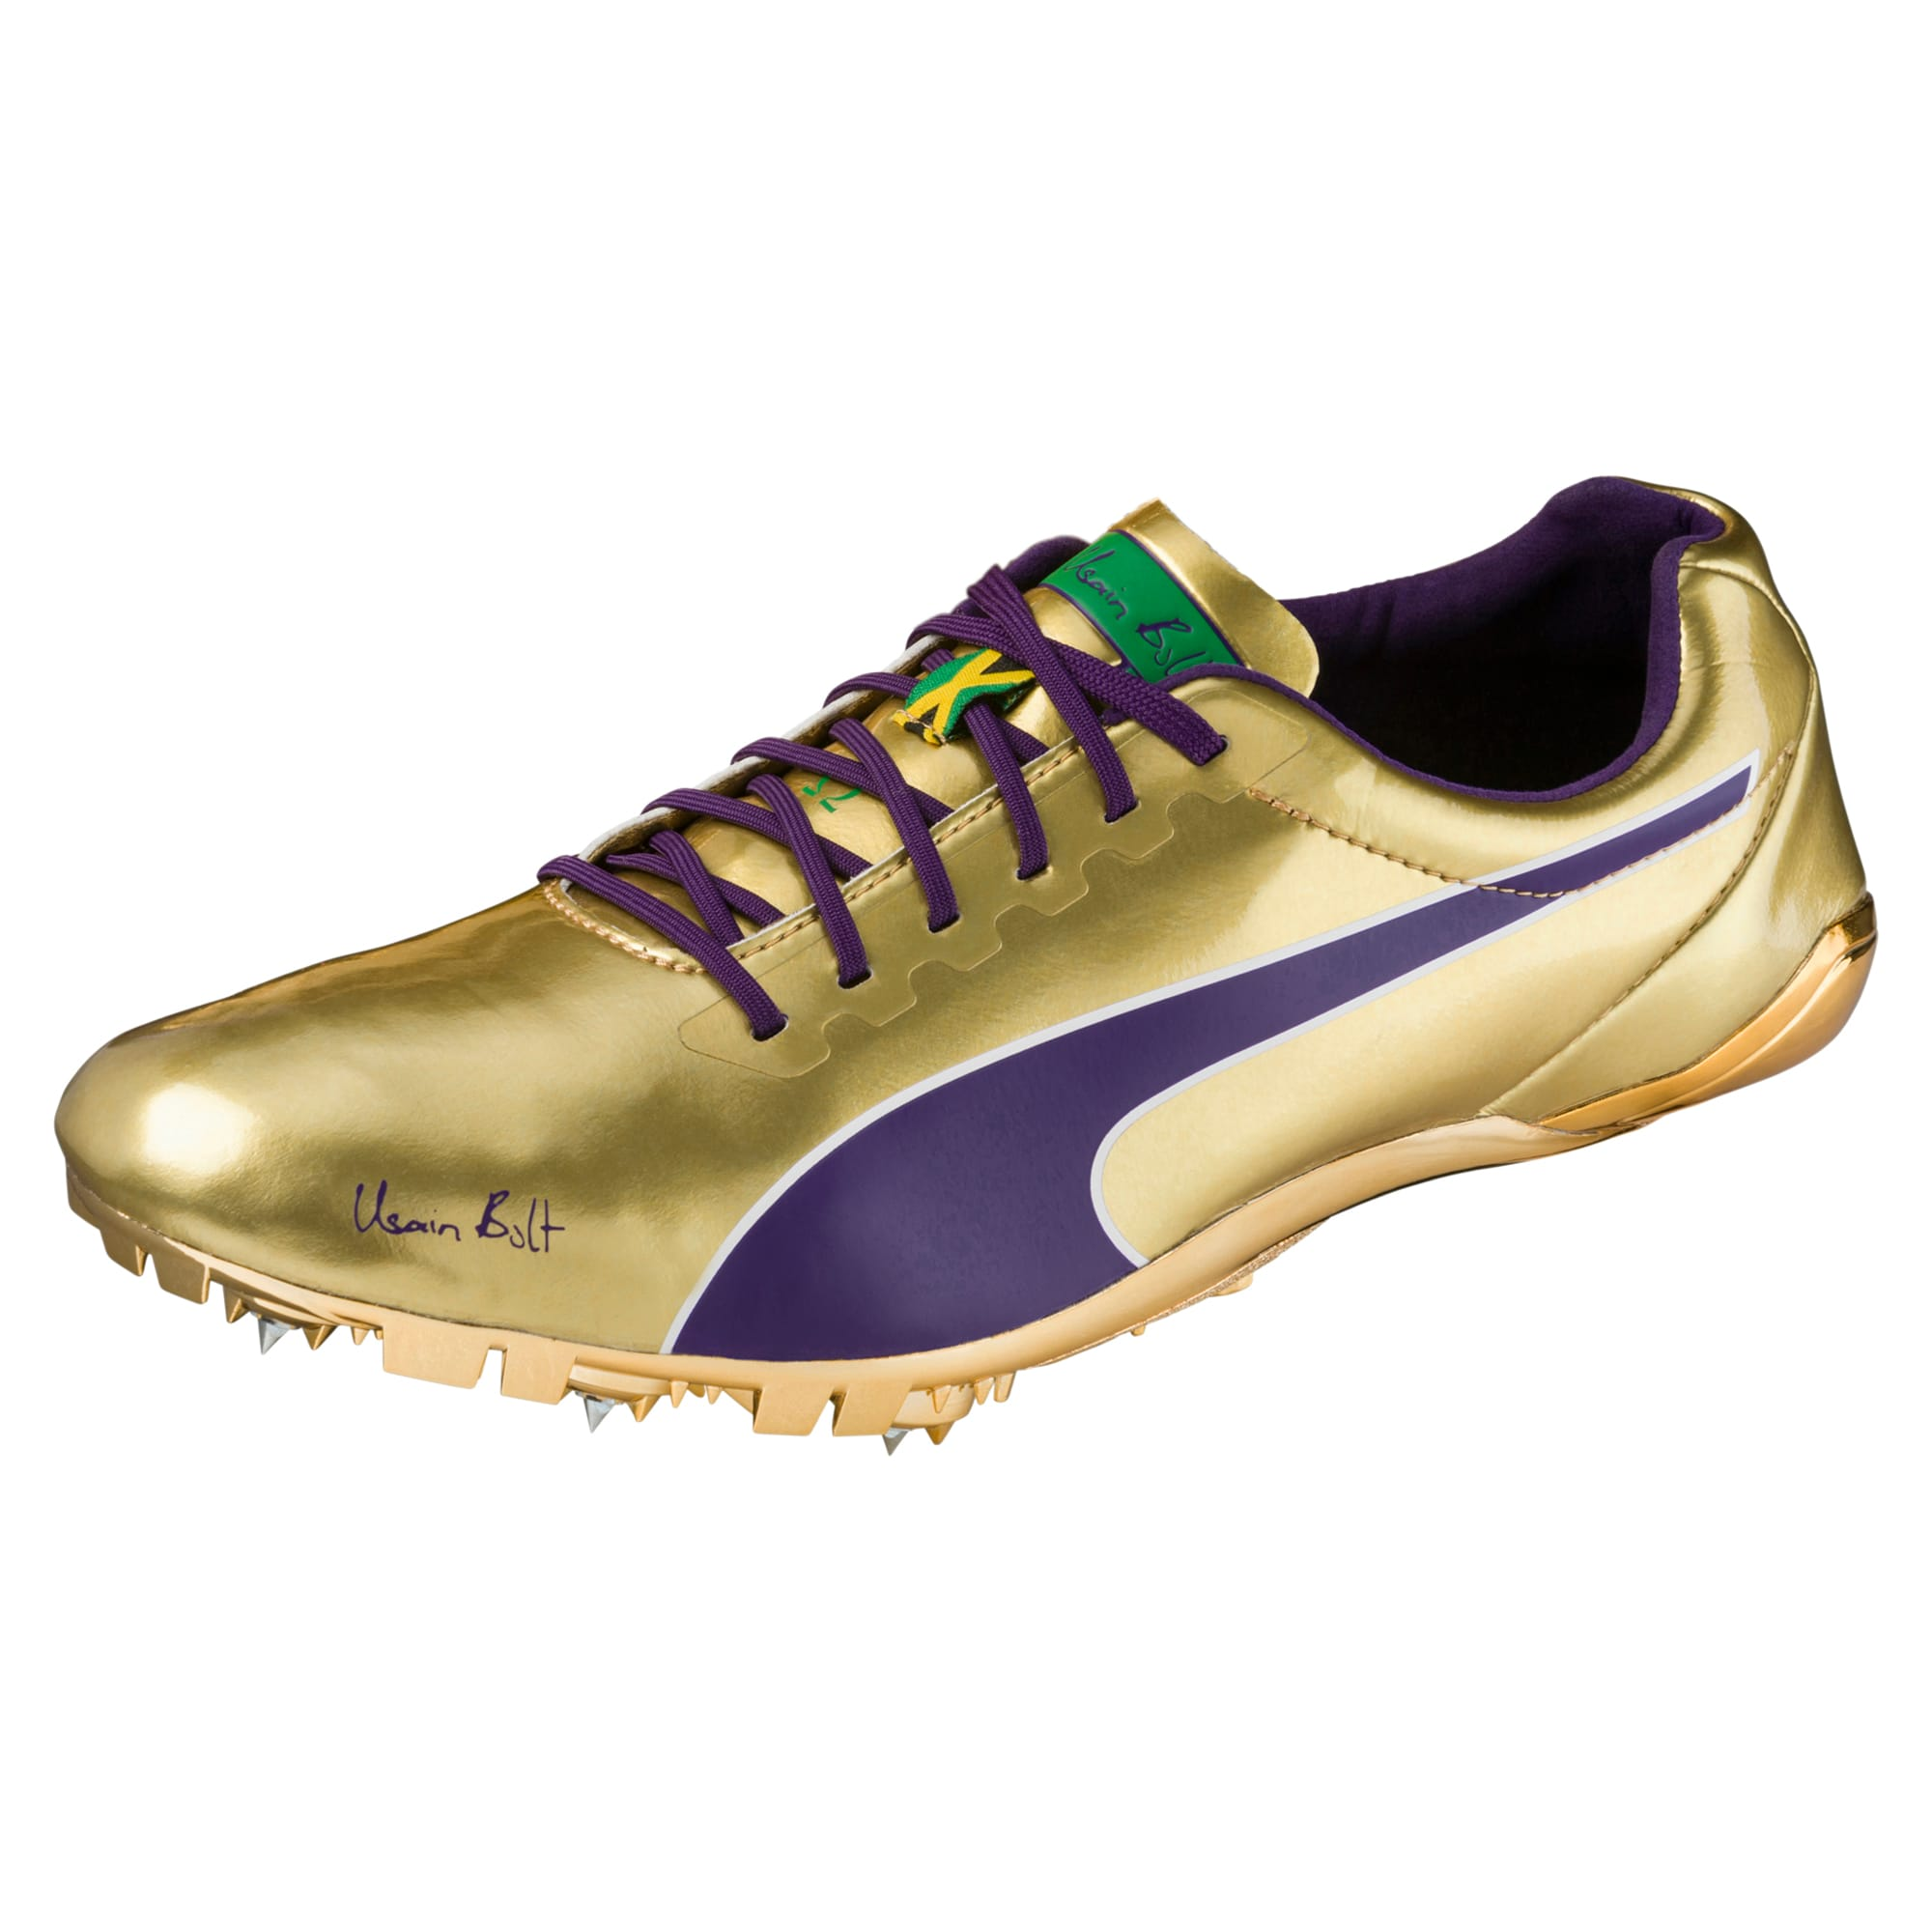 Bolt evoSPEED Electric Legacy Spikeschuh